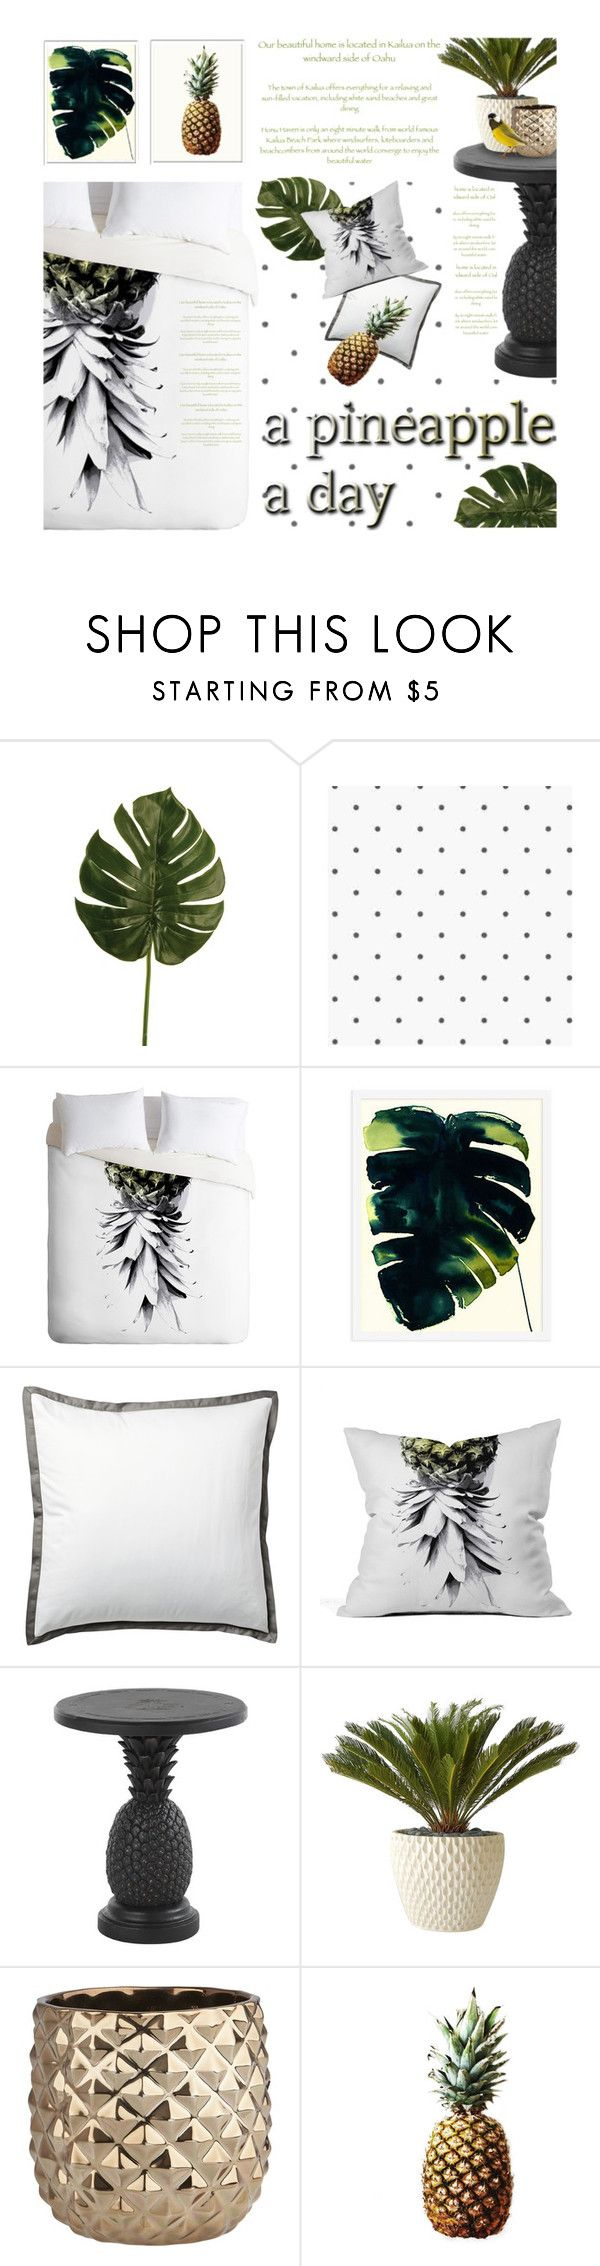 find this pin and more on top interior design looks pineapple bedroom home decor - Tommy Bahama Bedroom Decorating Ideas